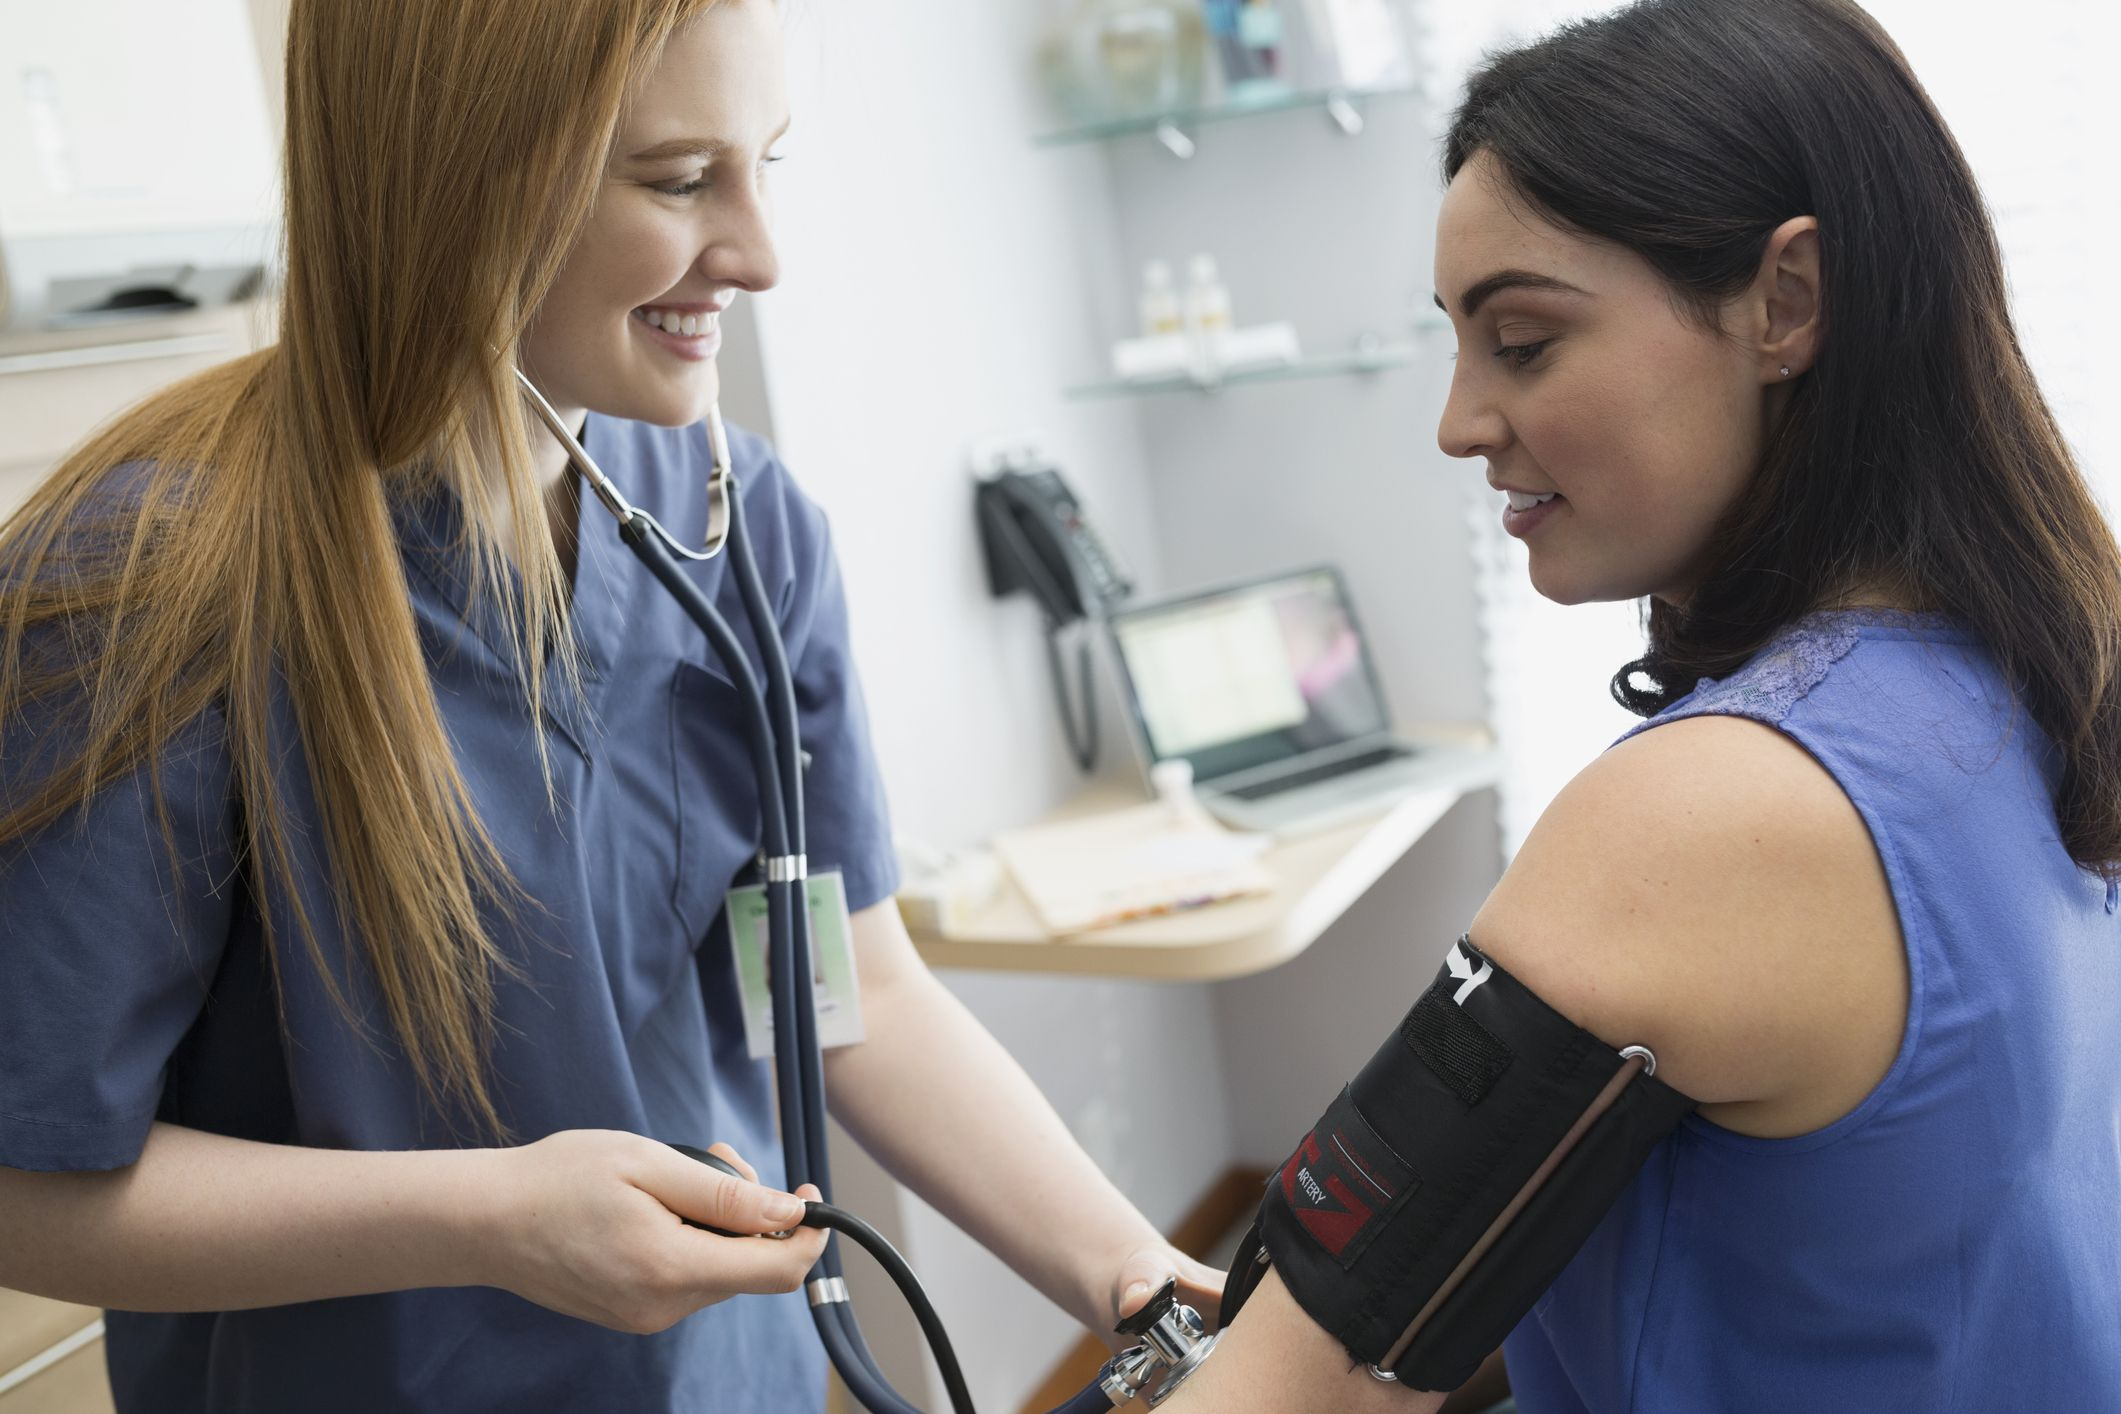 Your Blood Pressure Reading May Not Be Correct According to Experts